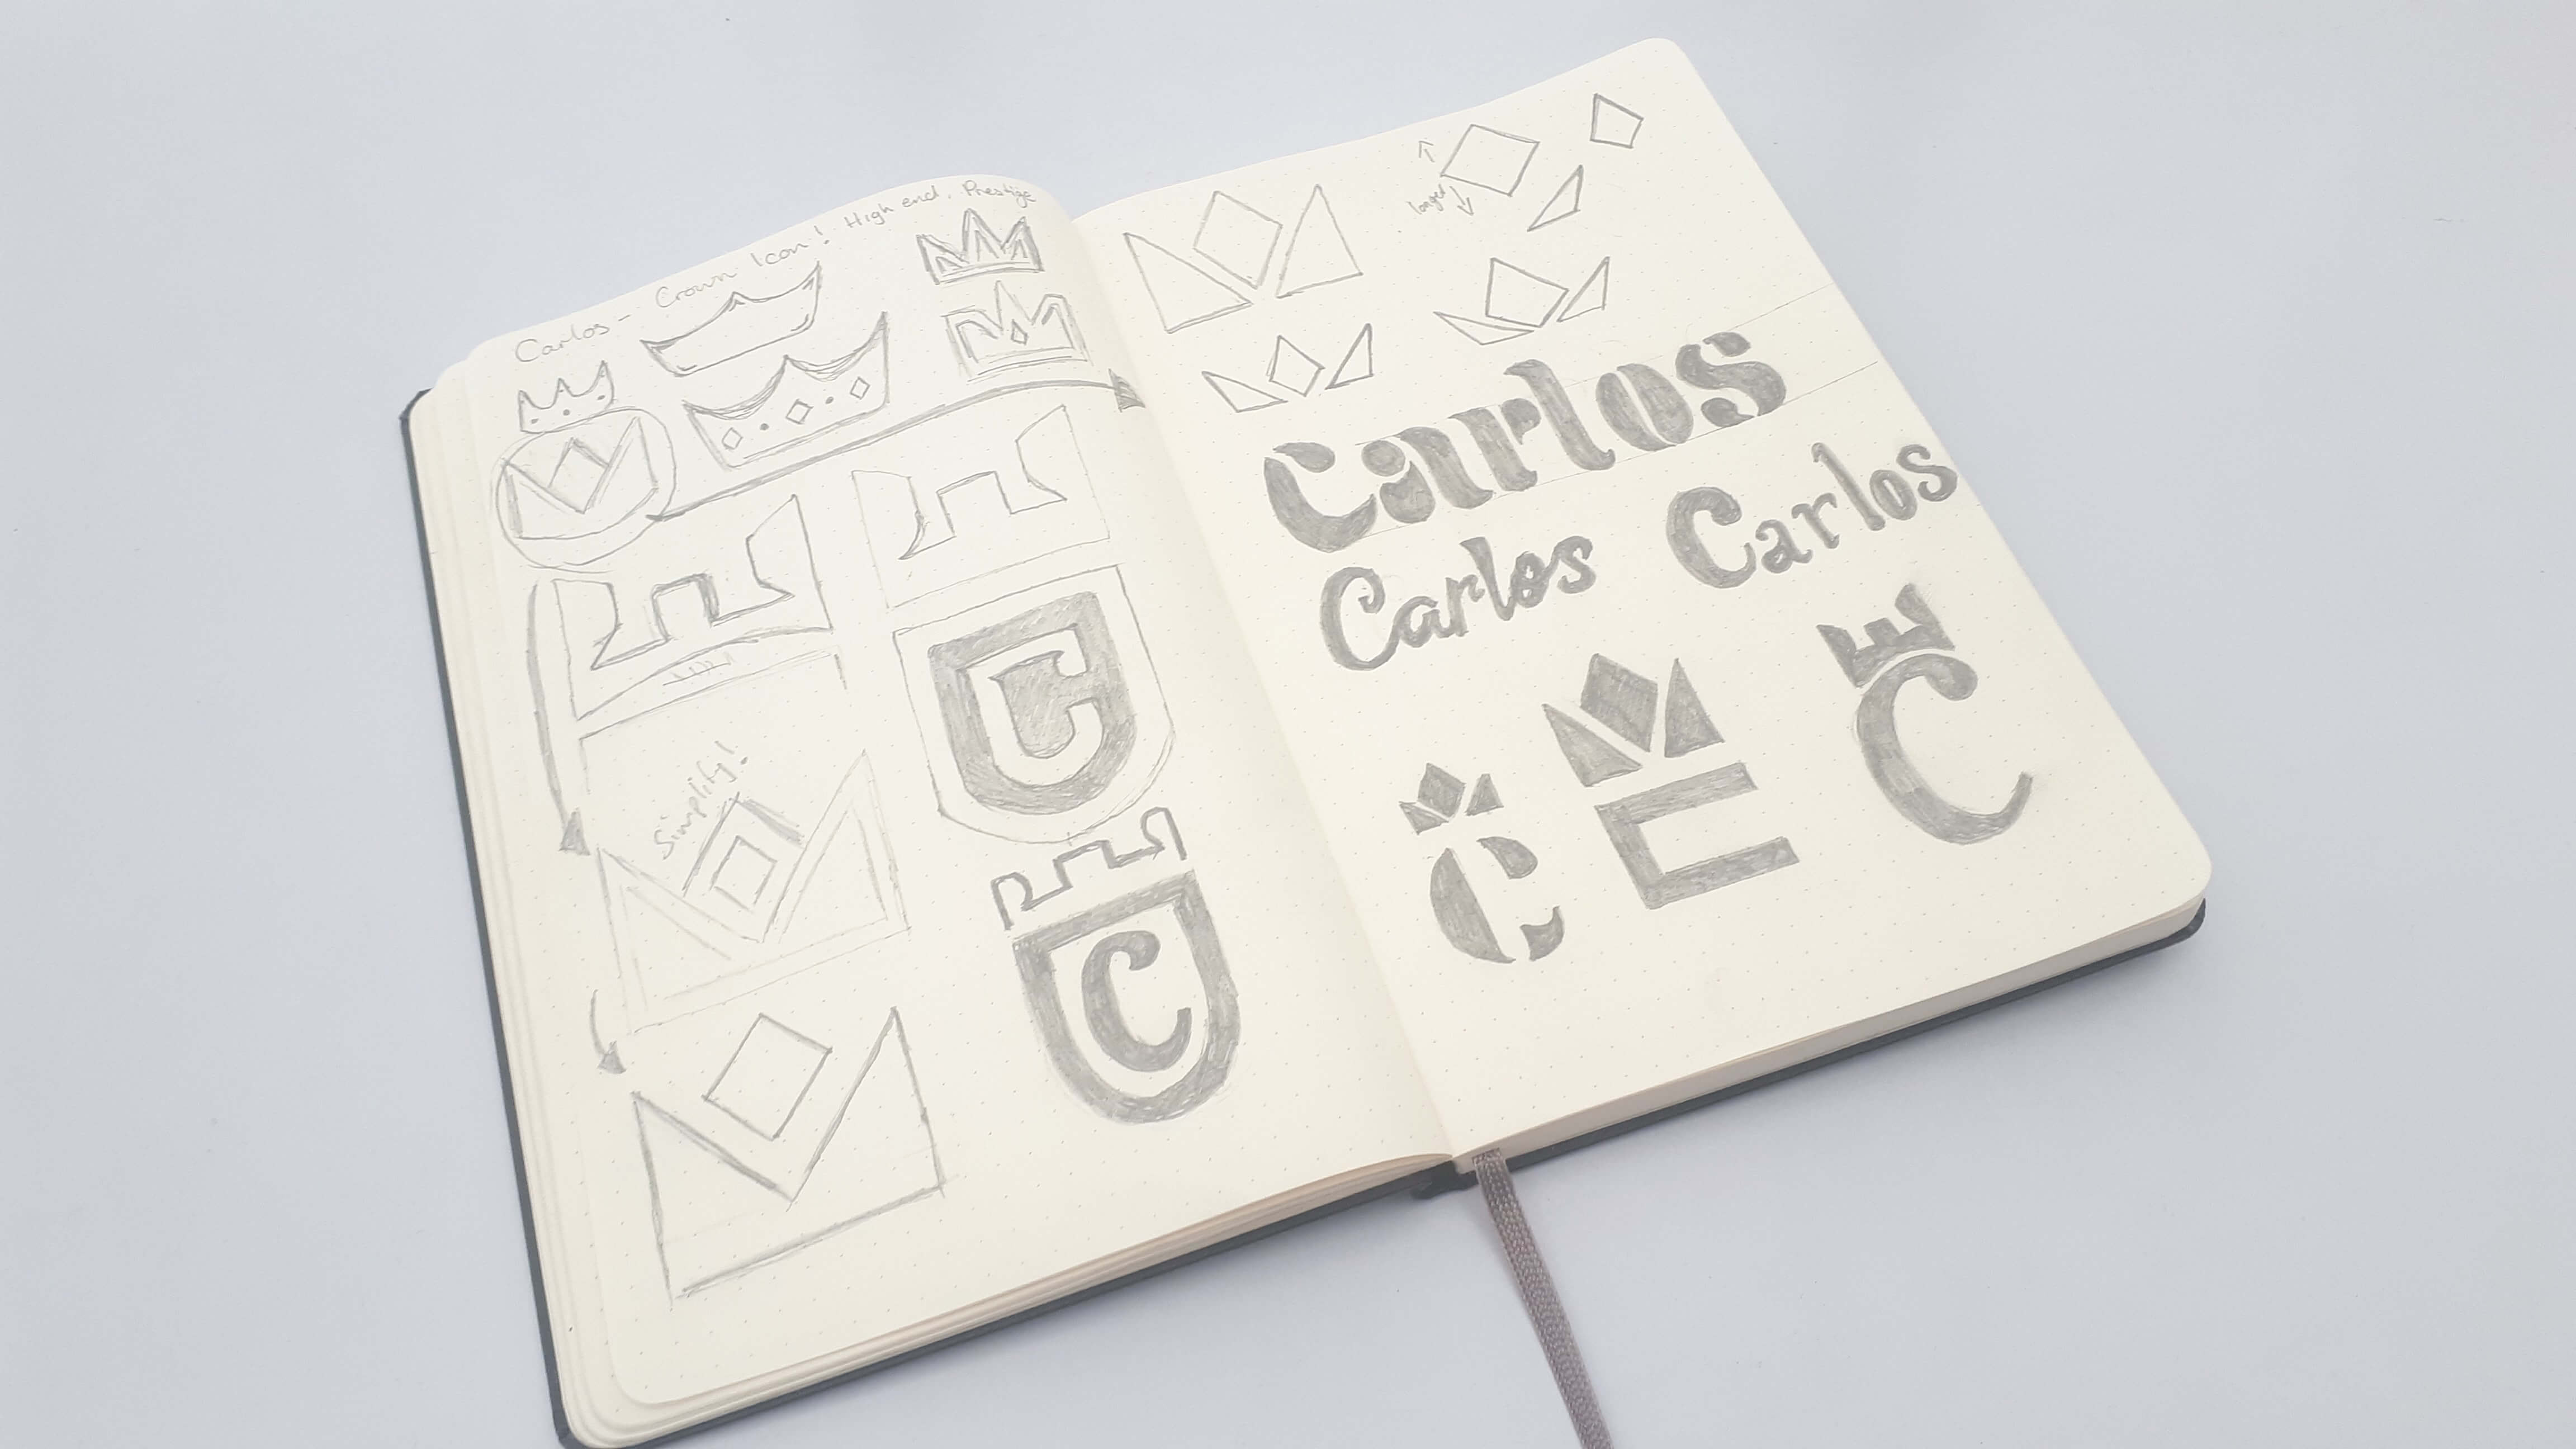 Carlos - Logo Design Sketches